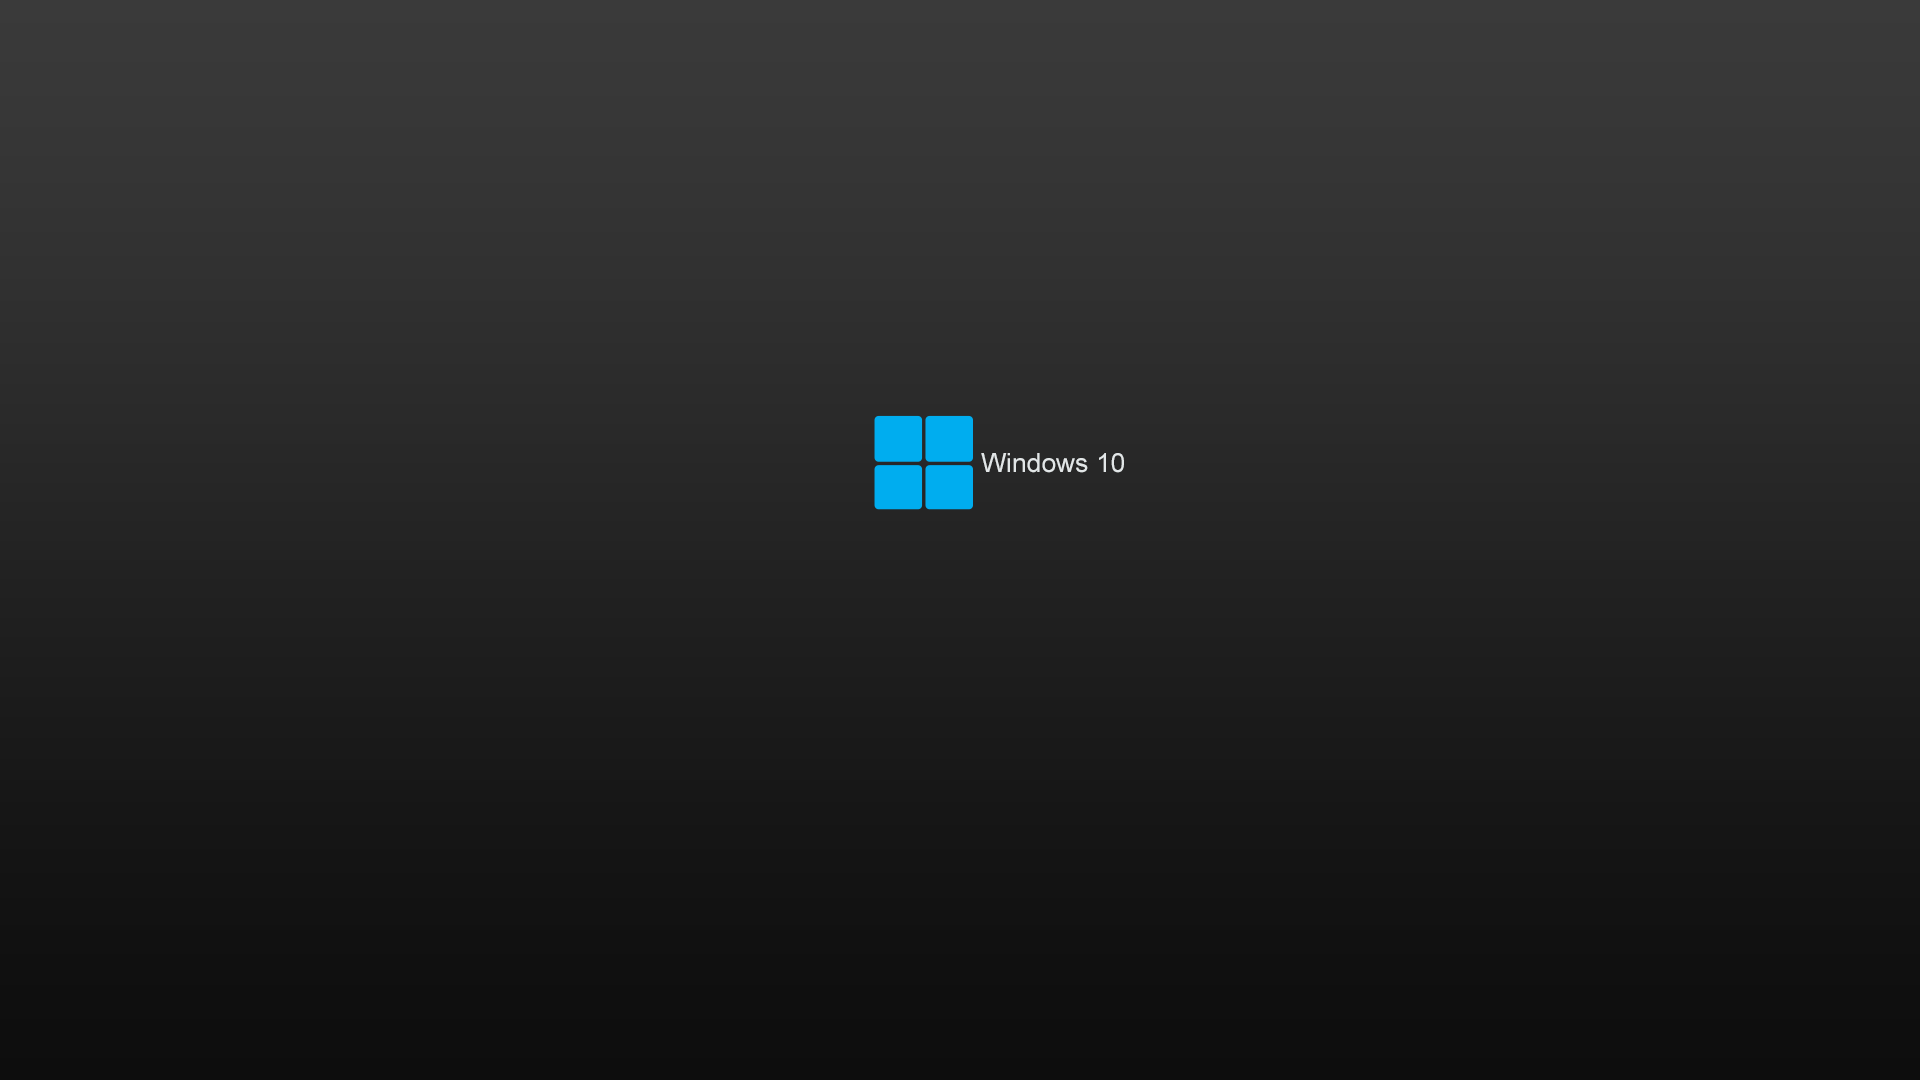 Windows 10 Wallpaper Theme 2e Grand Theft Auto Wallpaper